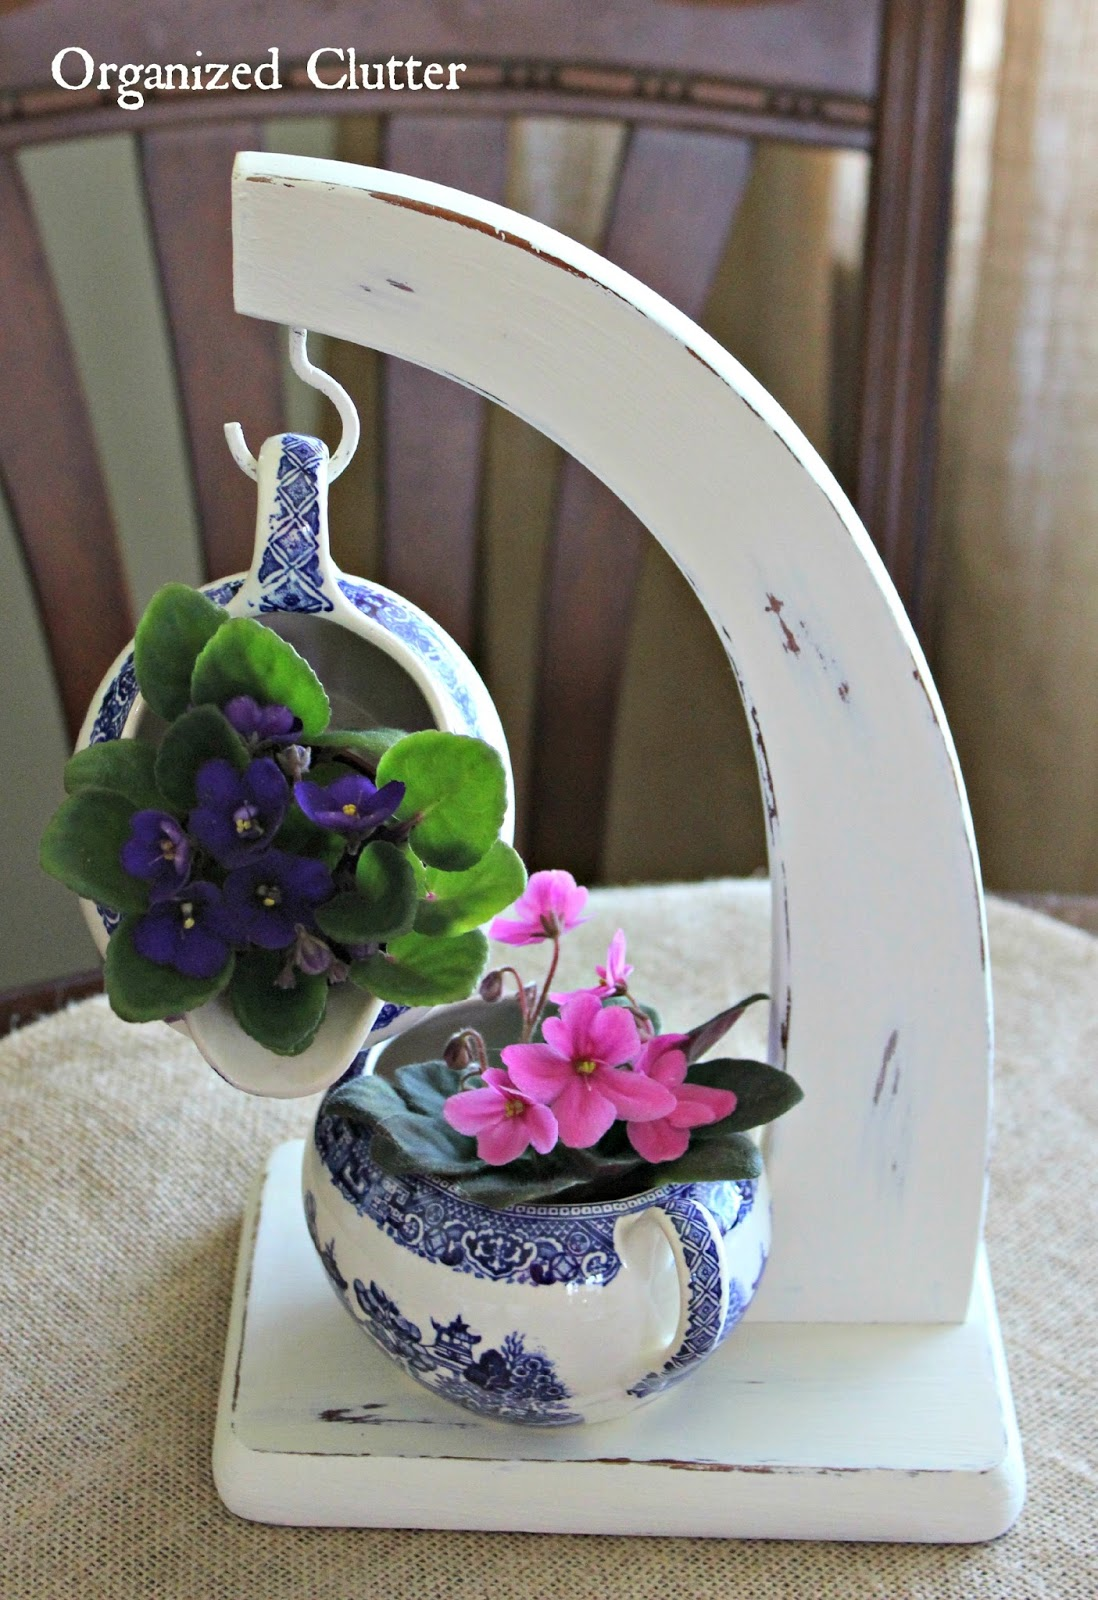 Repurposed Banana Stand African Violet Display www.organizedclutter.net